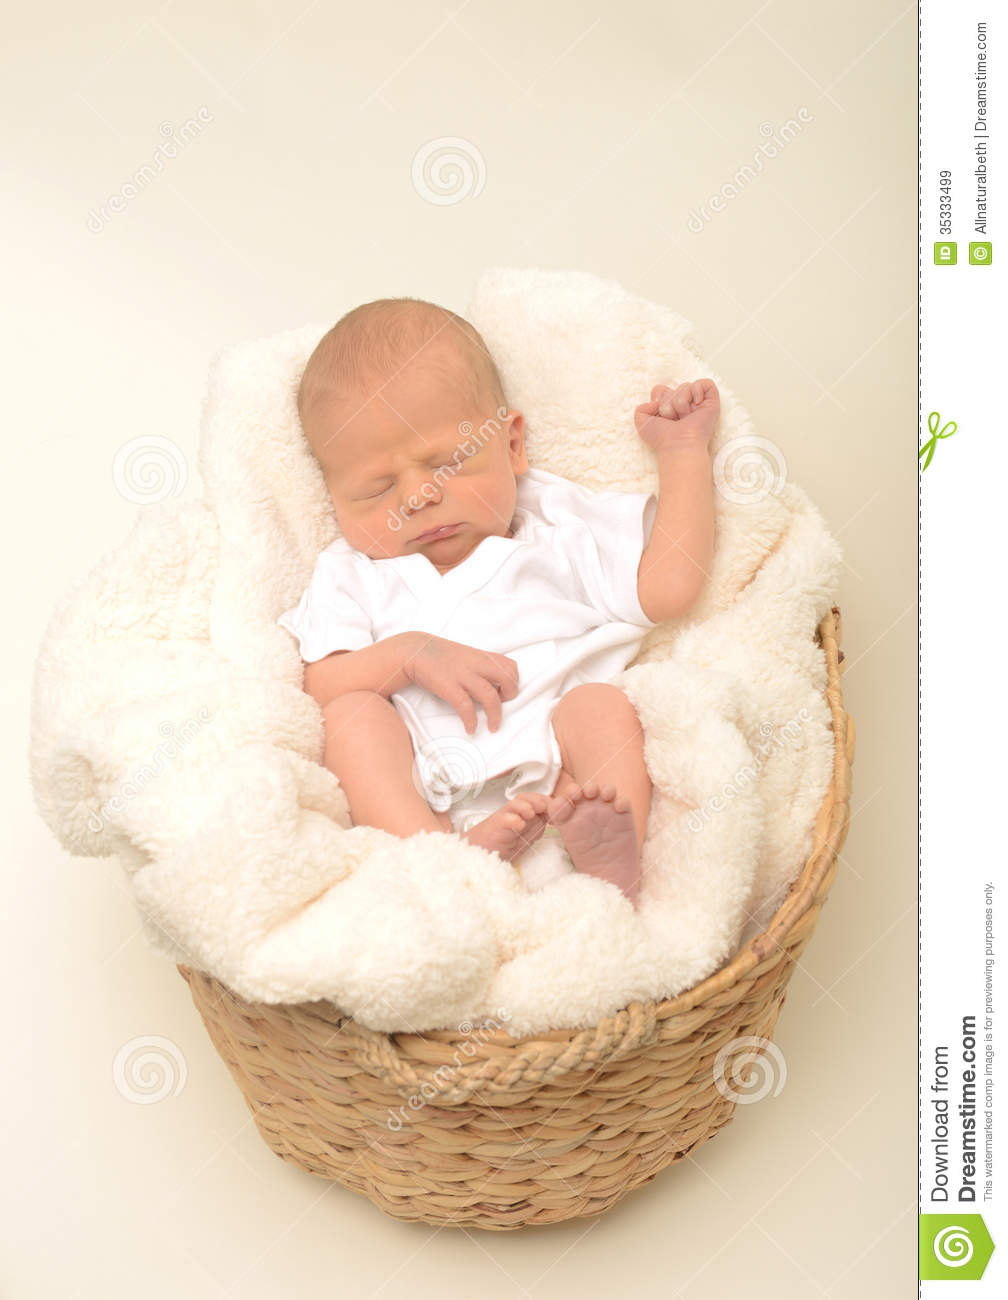 Newborn Baby Or Infant Sleeping In Basket Royalty Free